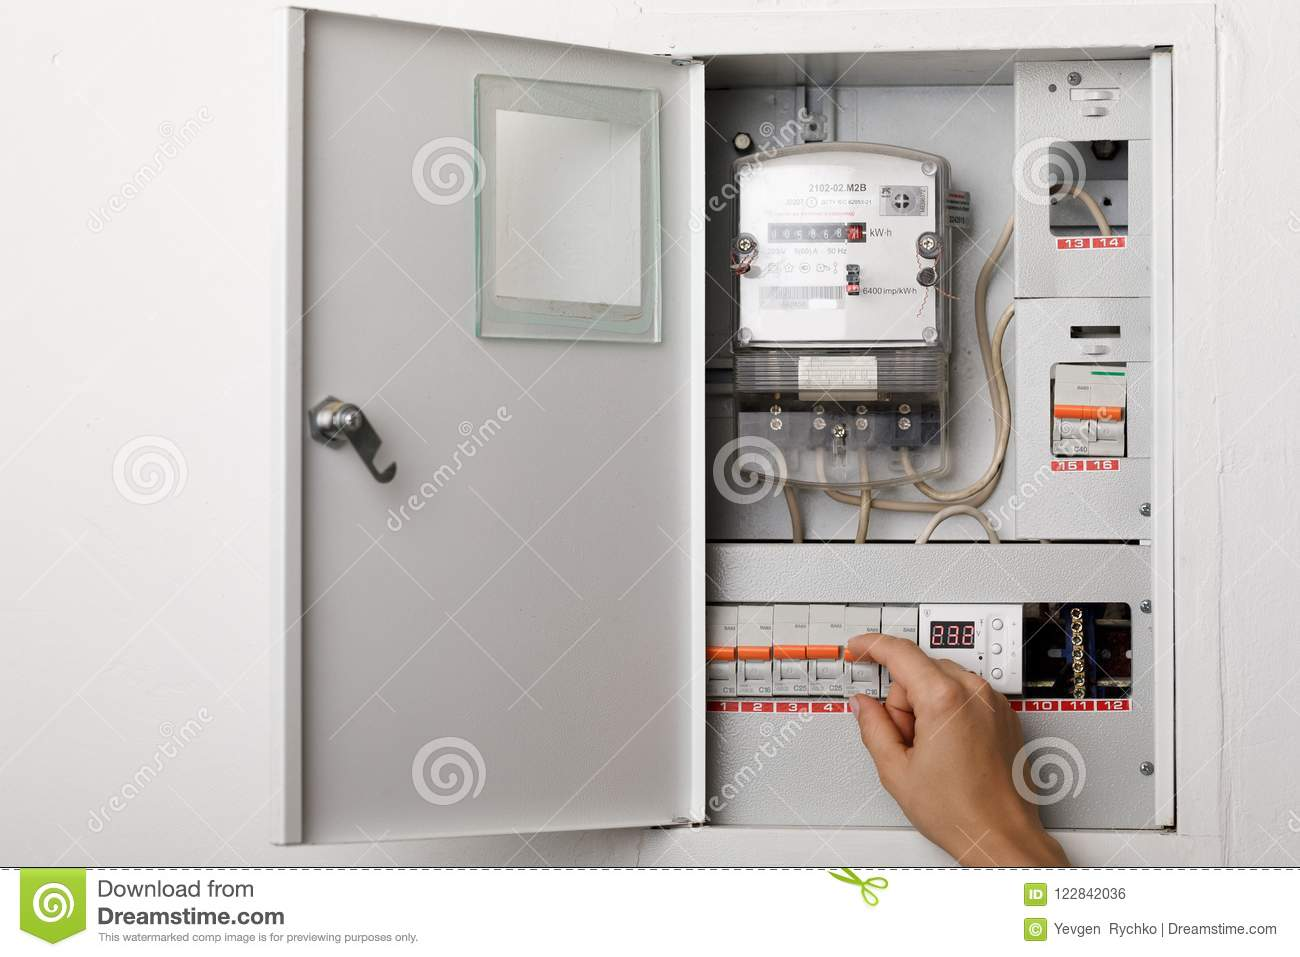 Electrical terminal box. stock photo. Image of electrical - 122842036